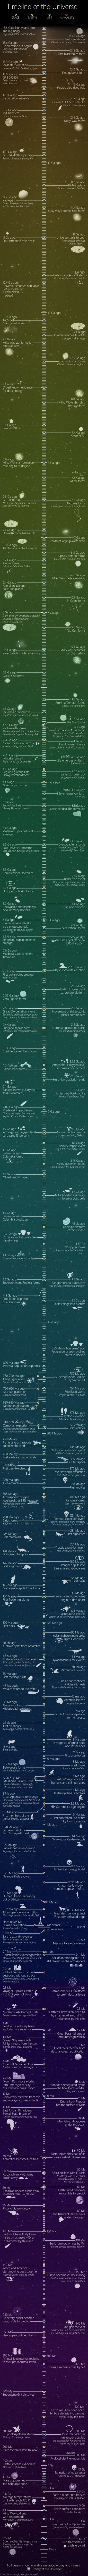 Extremely Detailed History of the Universe Infographic